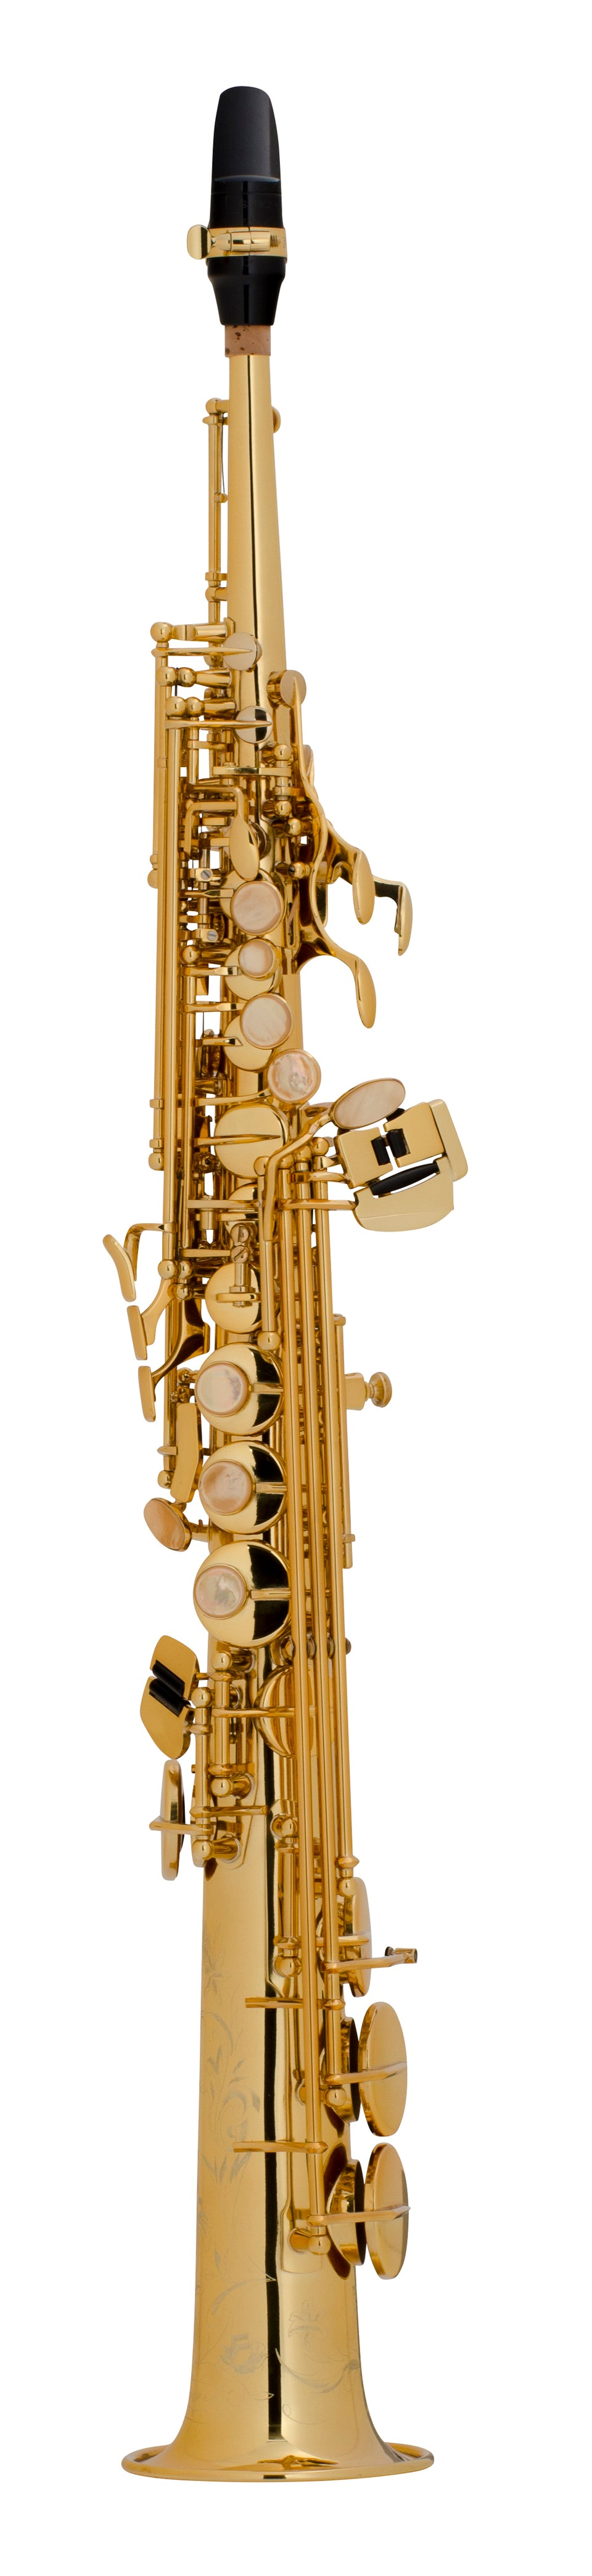 Selmer Super Action 80 Series II Soprano Saxophone